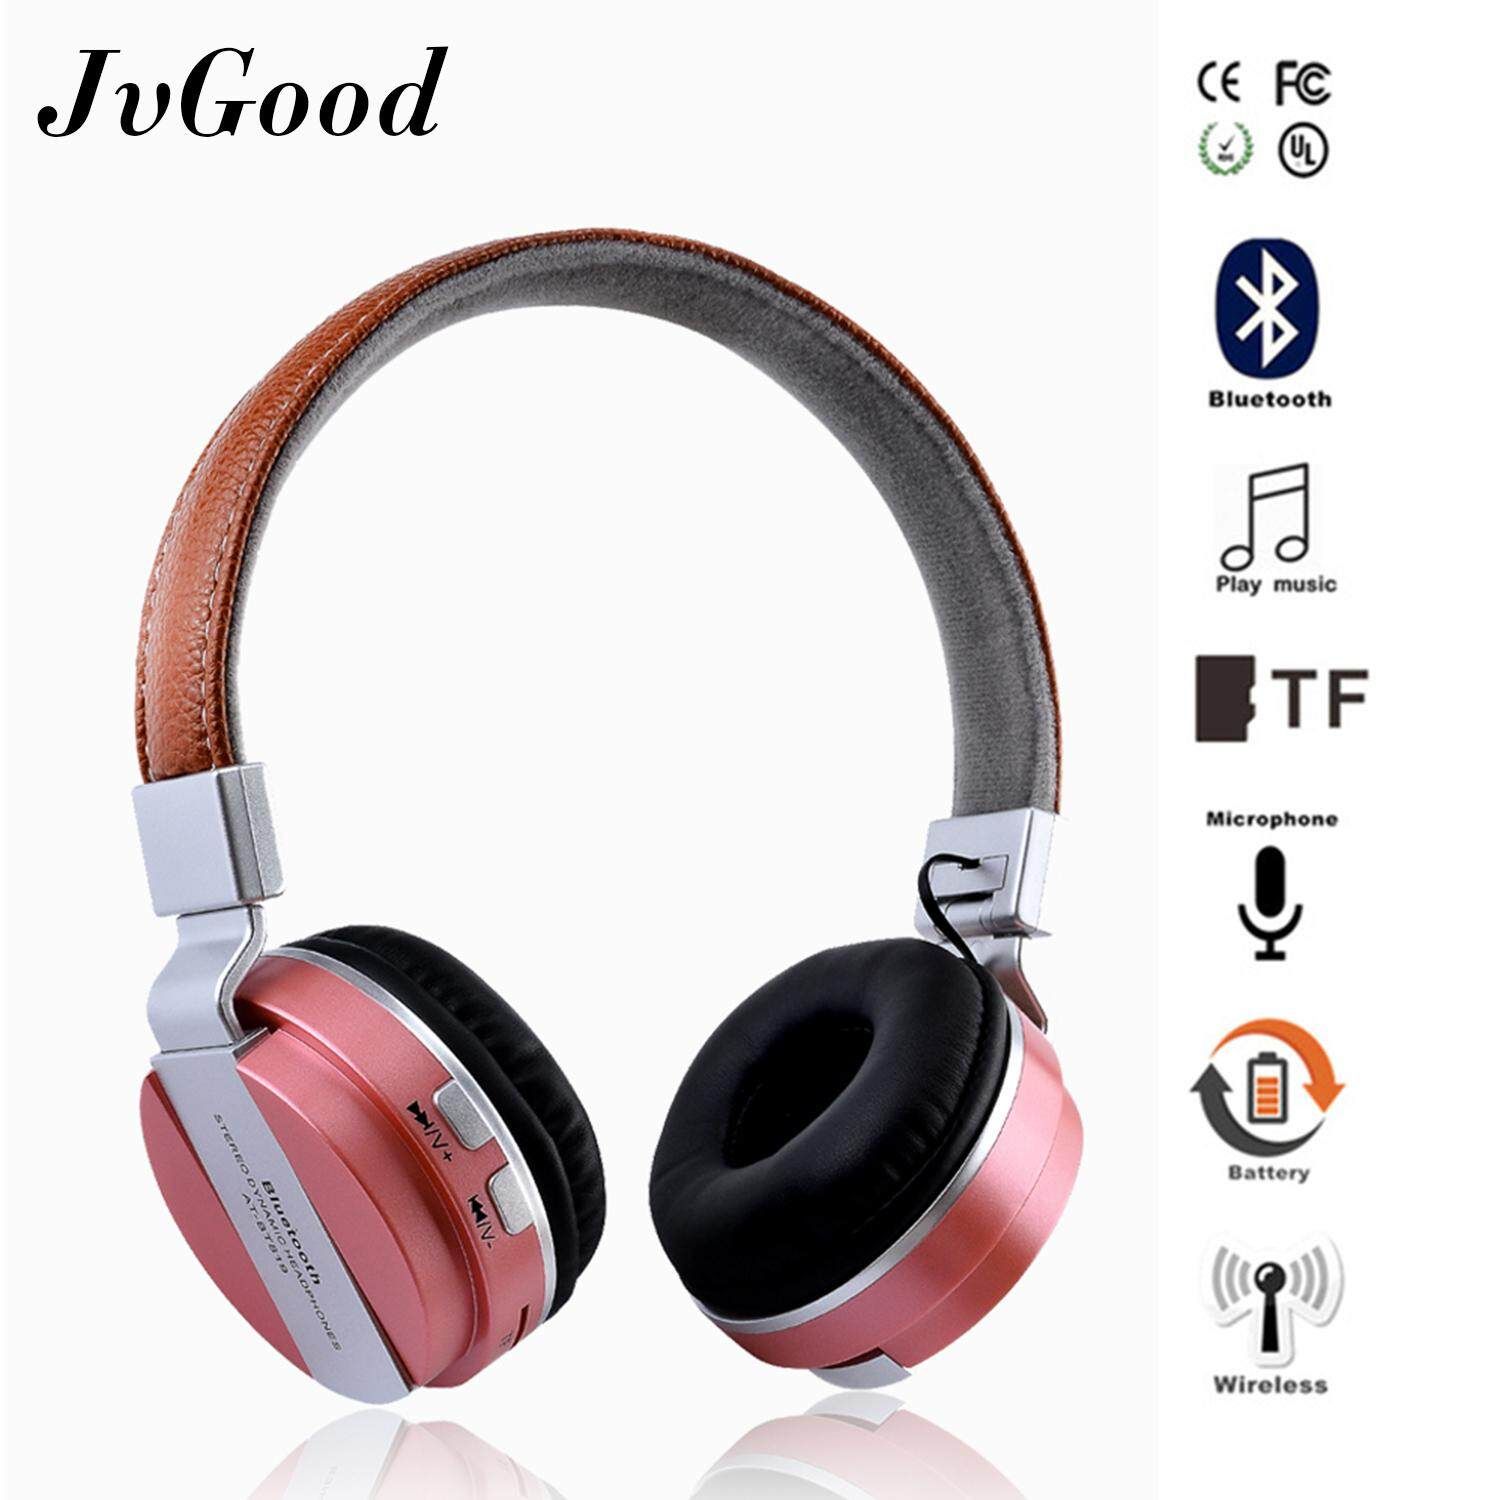 JvGood Wireless Bluetooth Headphone Foldable Leather Sport Headset With FM Radio AUX TF Card MP3